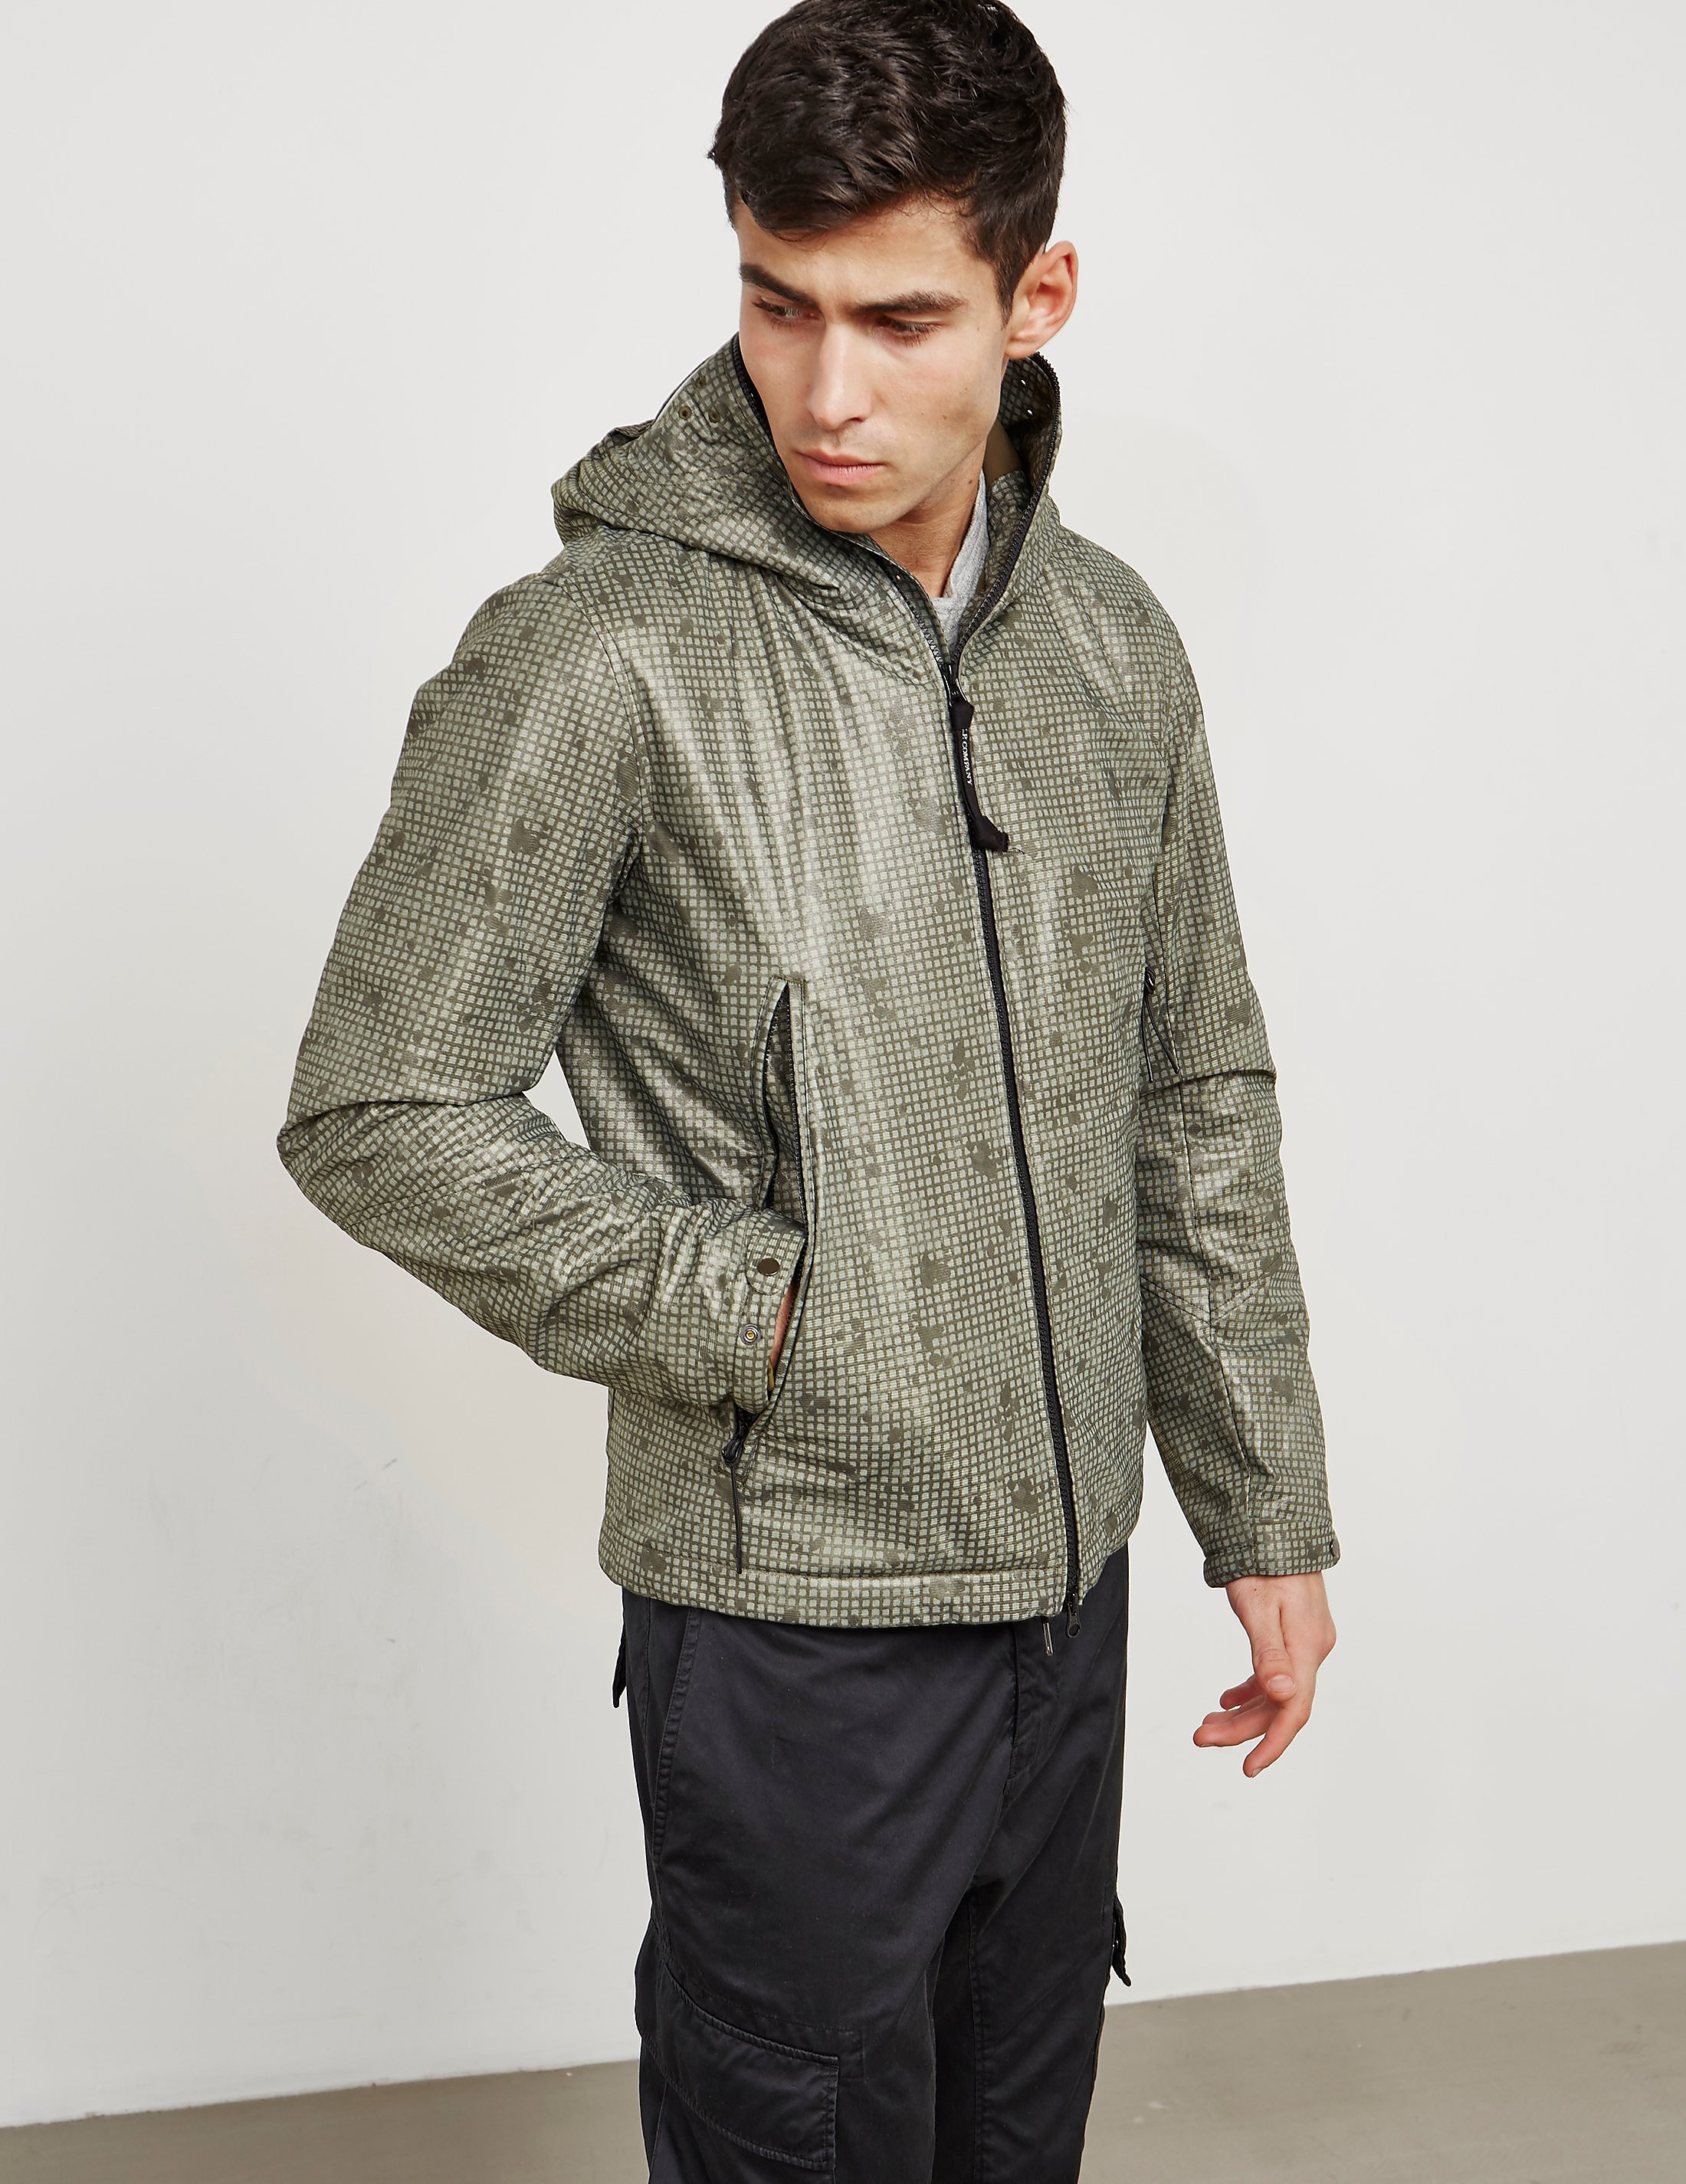 CP Company Camo Google Jacket - Online Exclusive